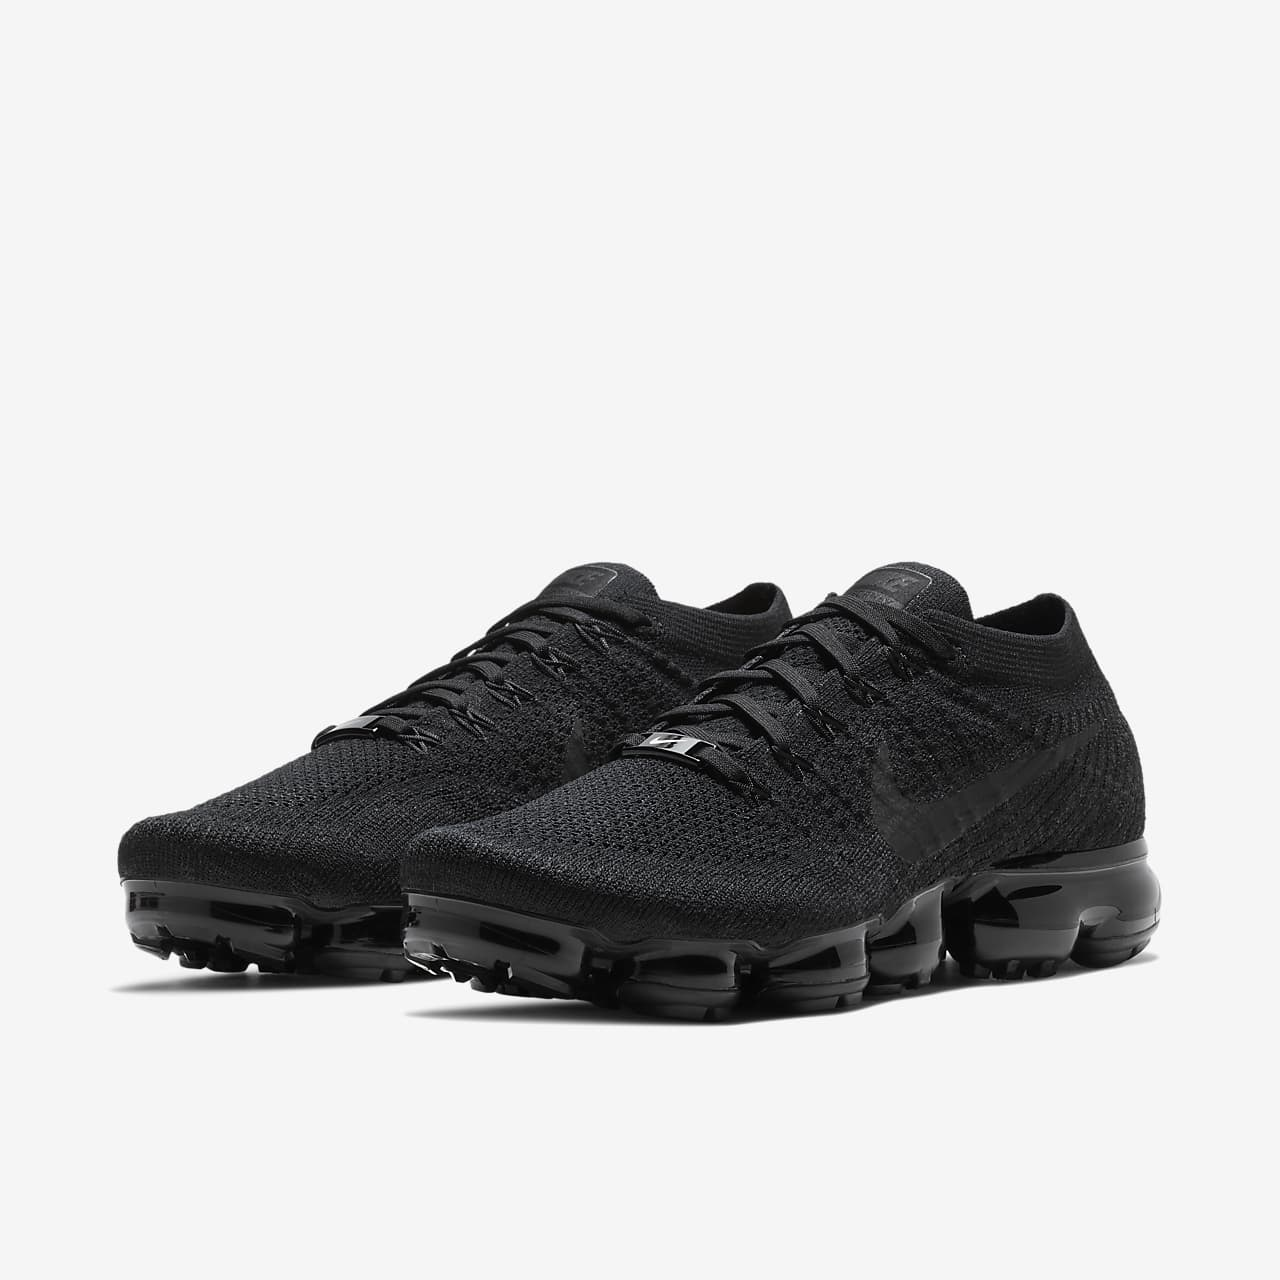 nike chaussure hommes vapormax